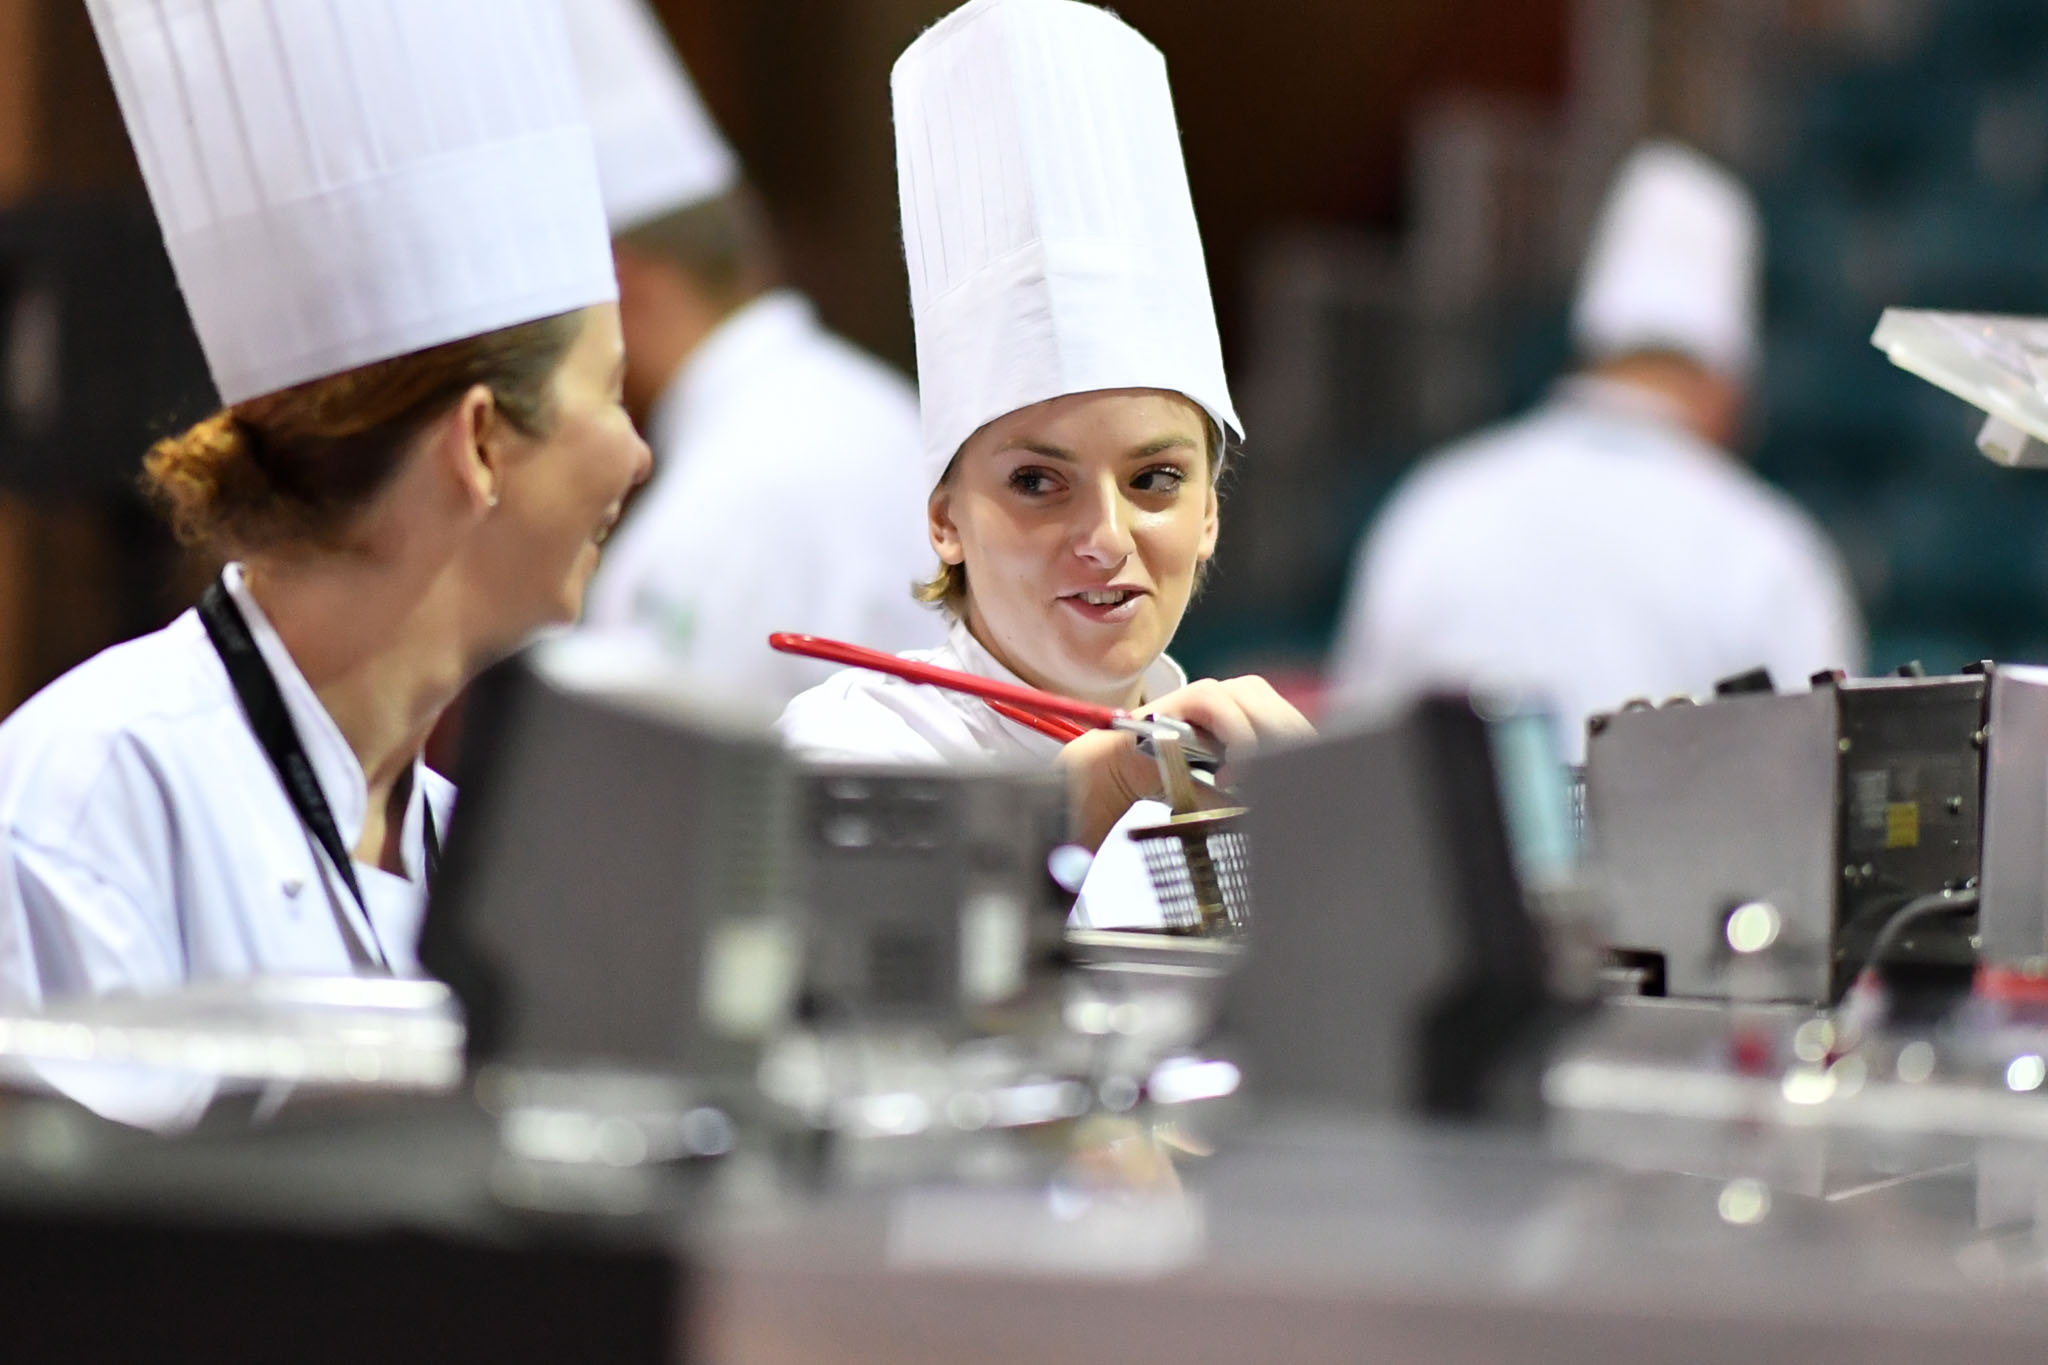 Melbourne, 30 May 2017 - Brooke Noble commis chef assisting Andrew Ballard of the Simmer Culinary in Mornington talks to Karen Doyle from Le Cordon Bleu kitchen invigilator judge at the Australian selection trials of the Bocuse d'Or culinary competition held during the Food Service Australia show at the Royal Exhibition Building in Melbourne, Australia. Photo Sydney Low